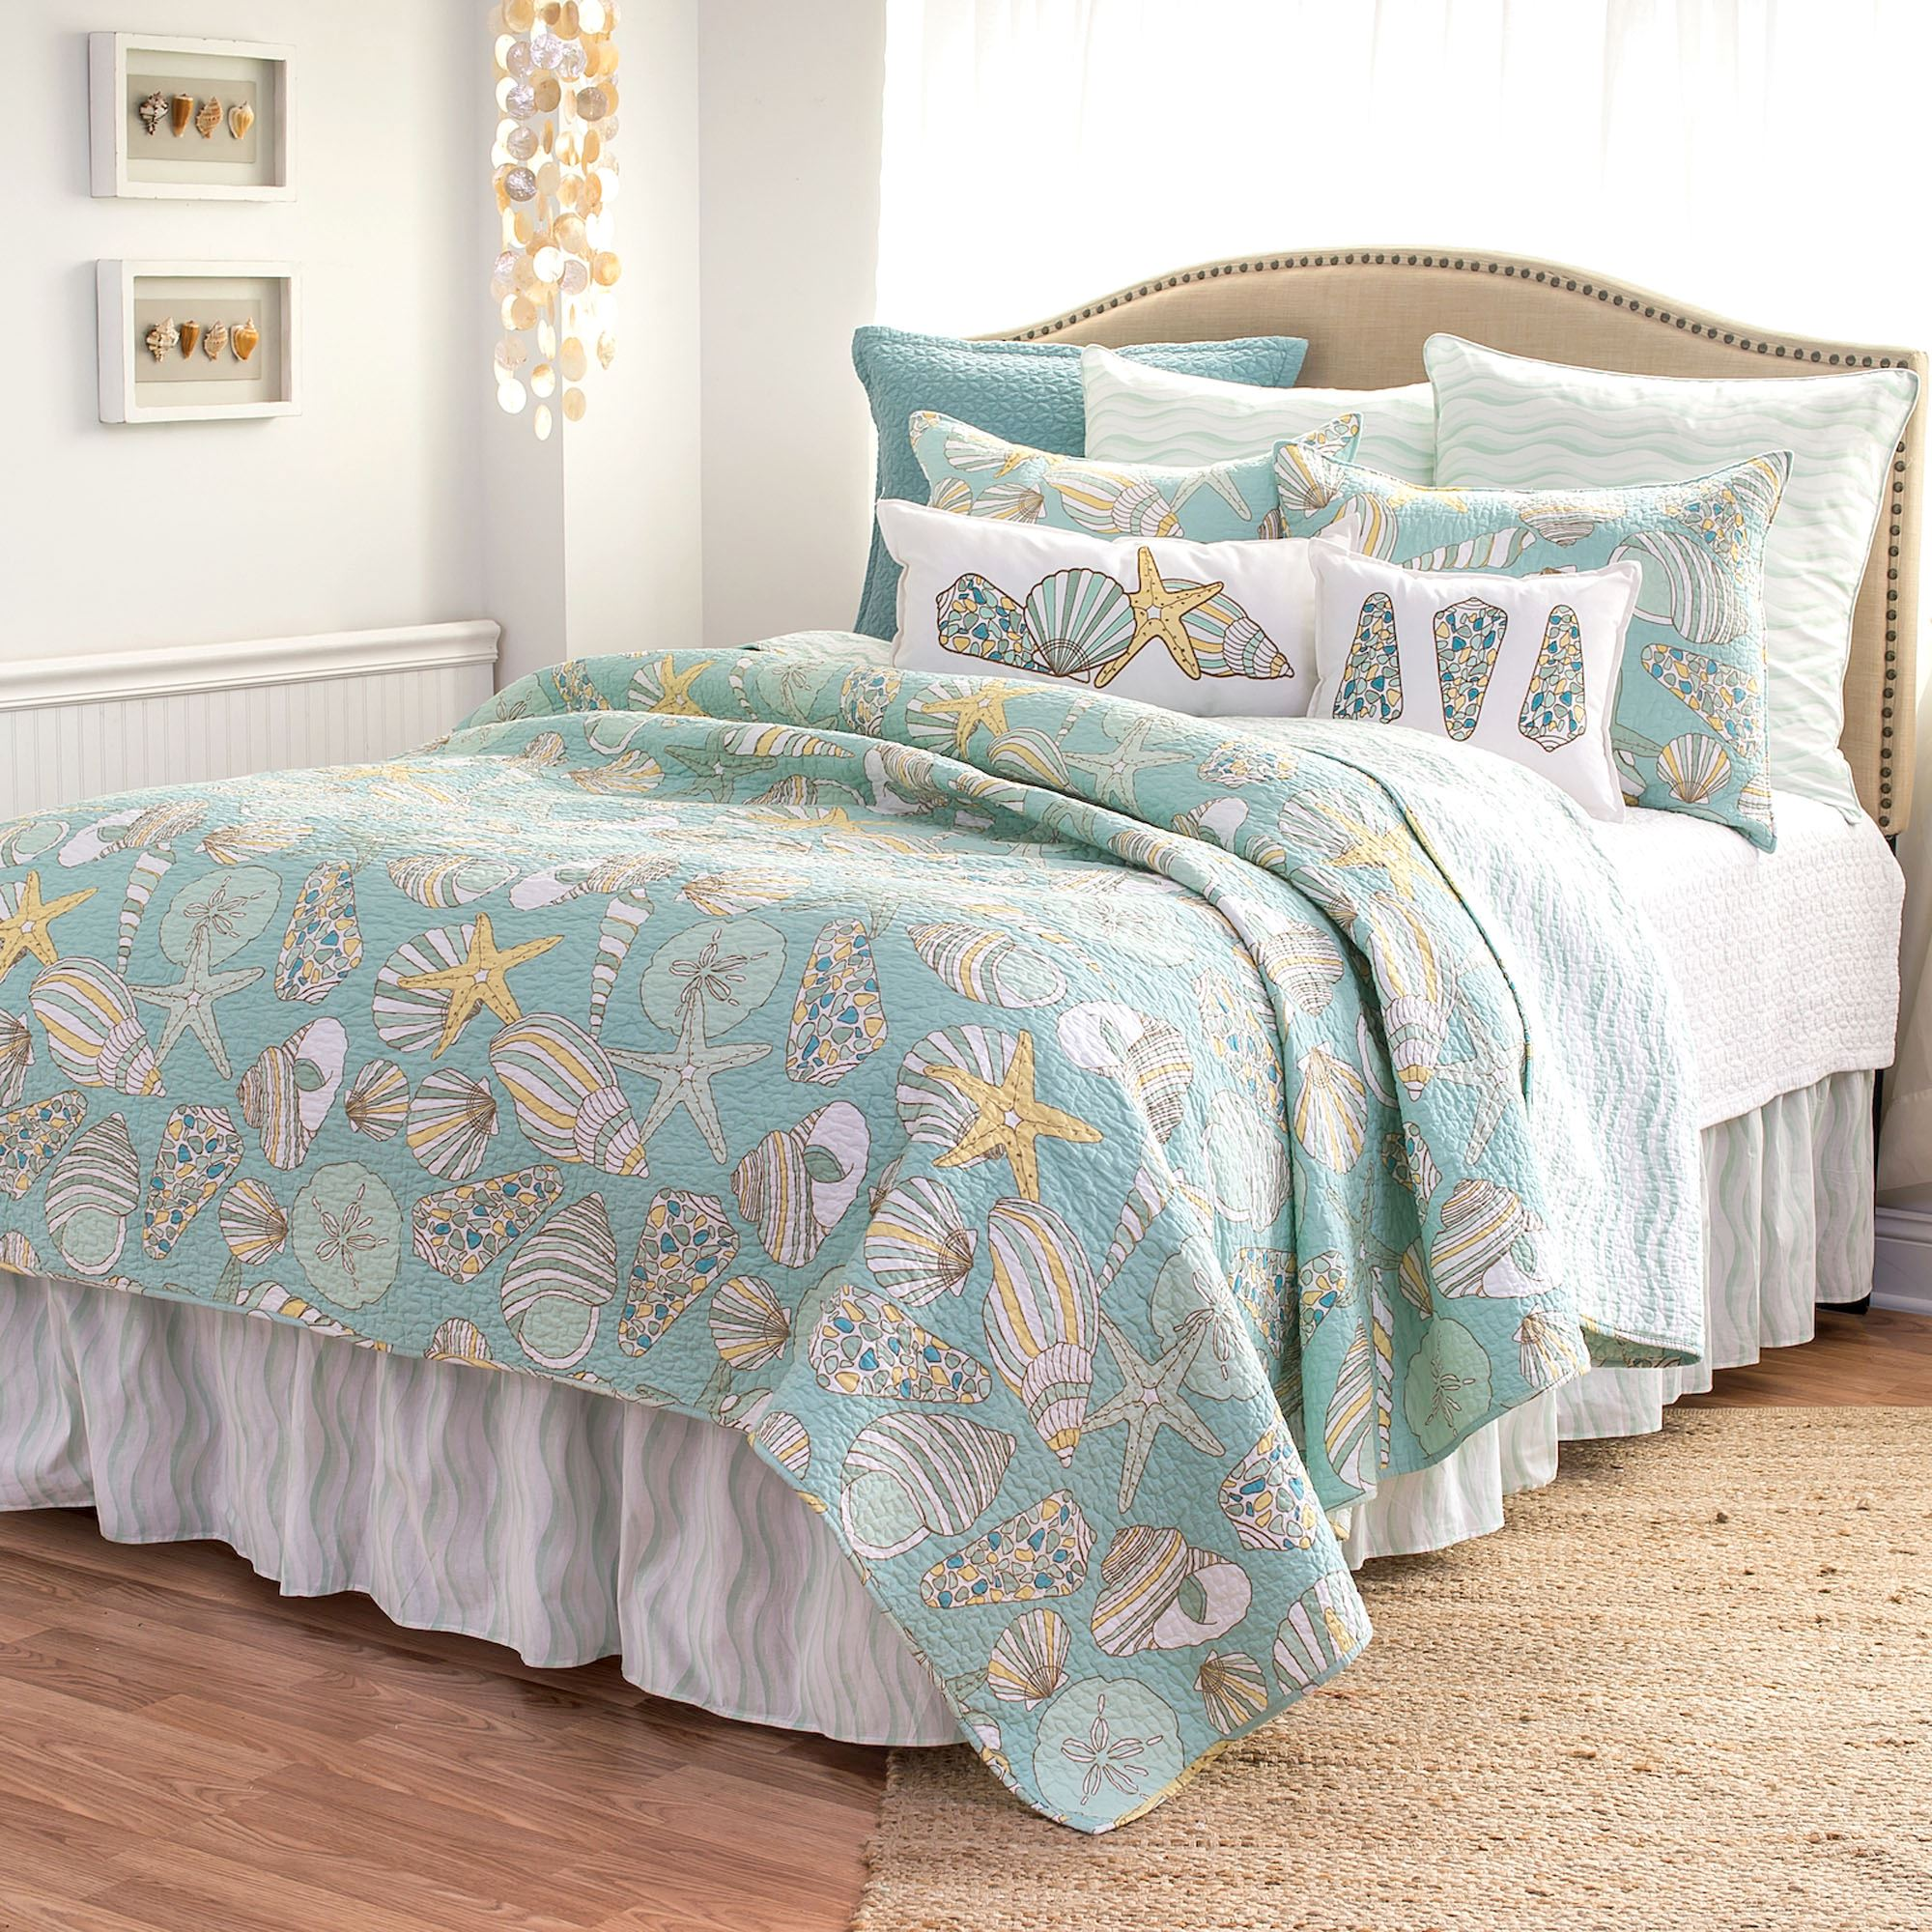 Cabana Bay Coastal Seashell Quilt